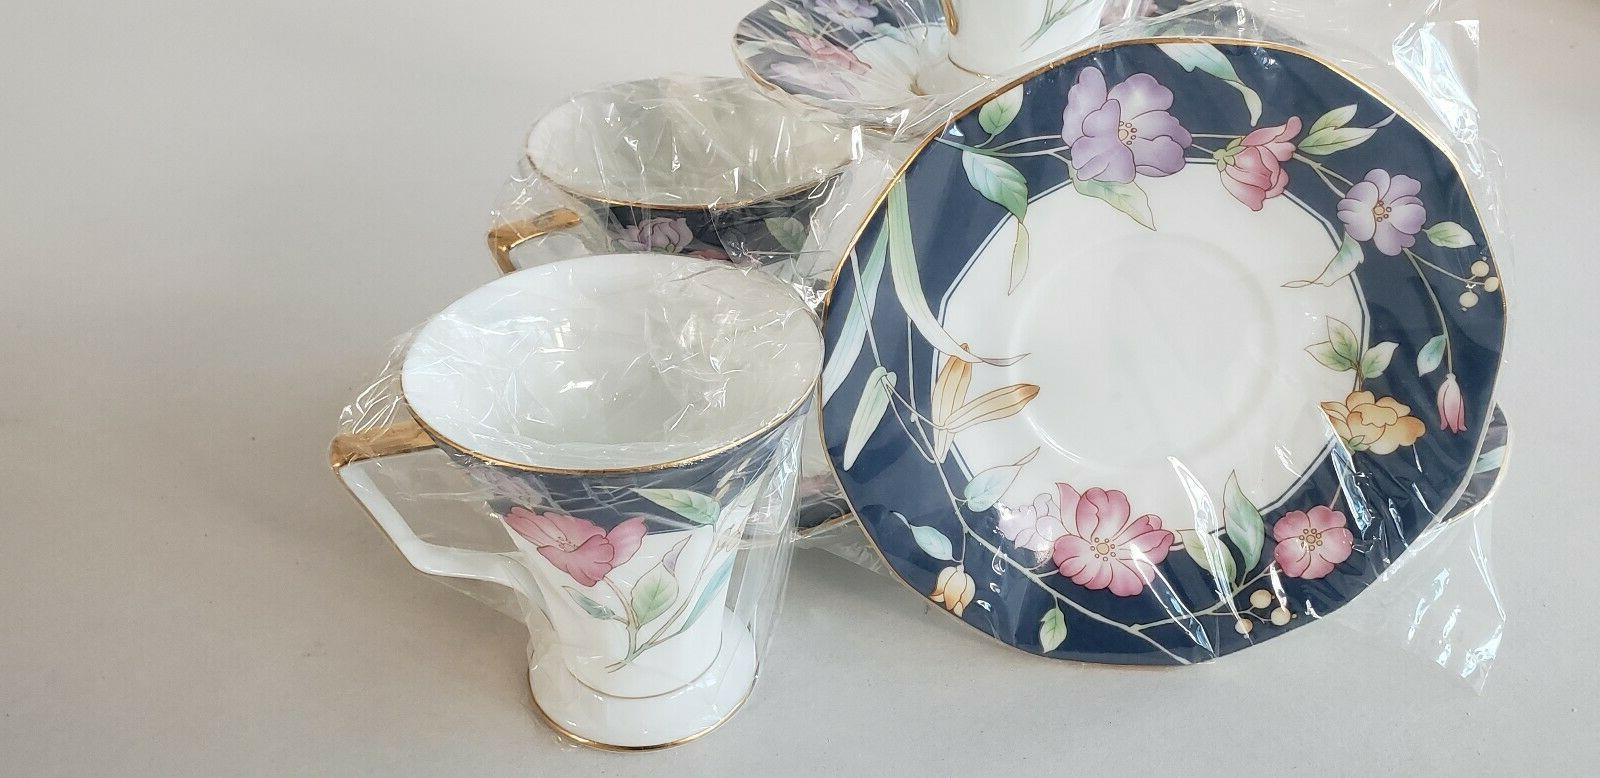 Fine China Tea Spring Flowers 4 cups 4